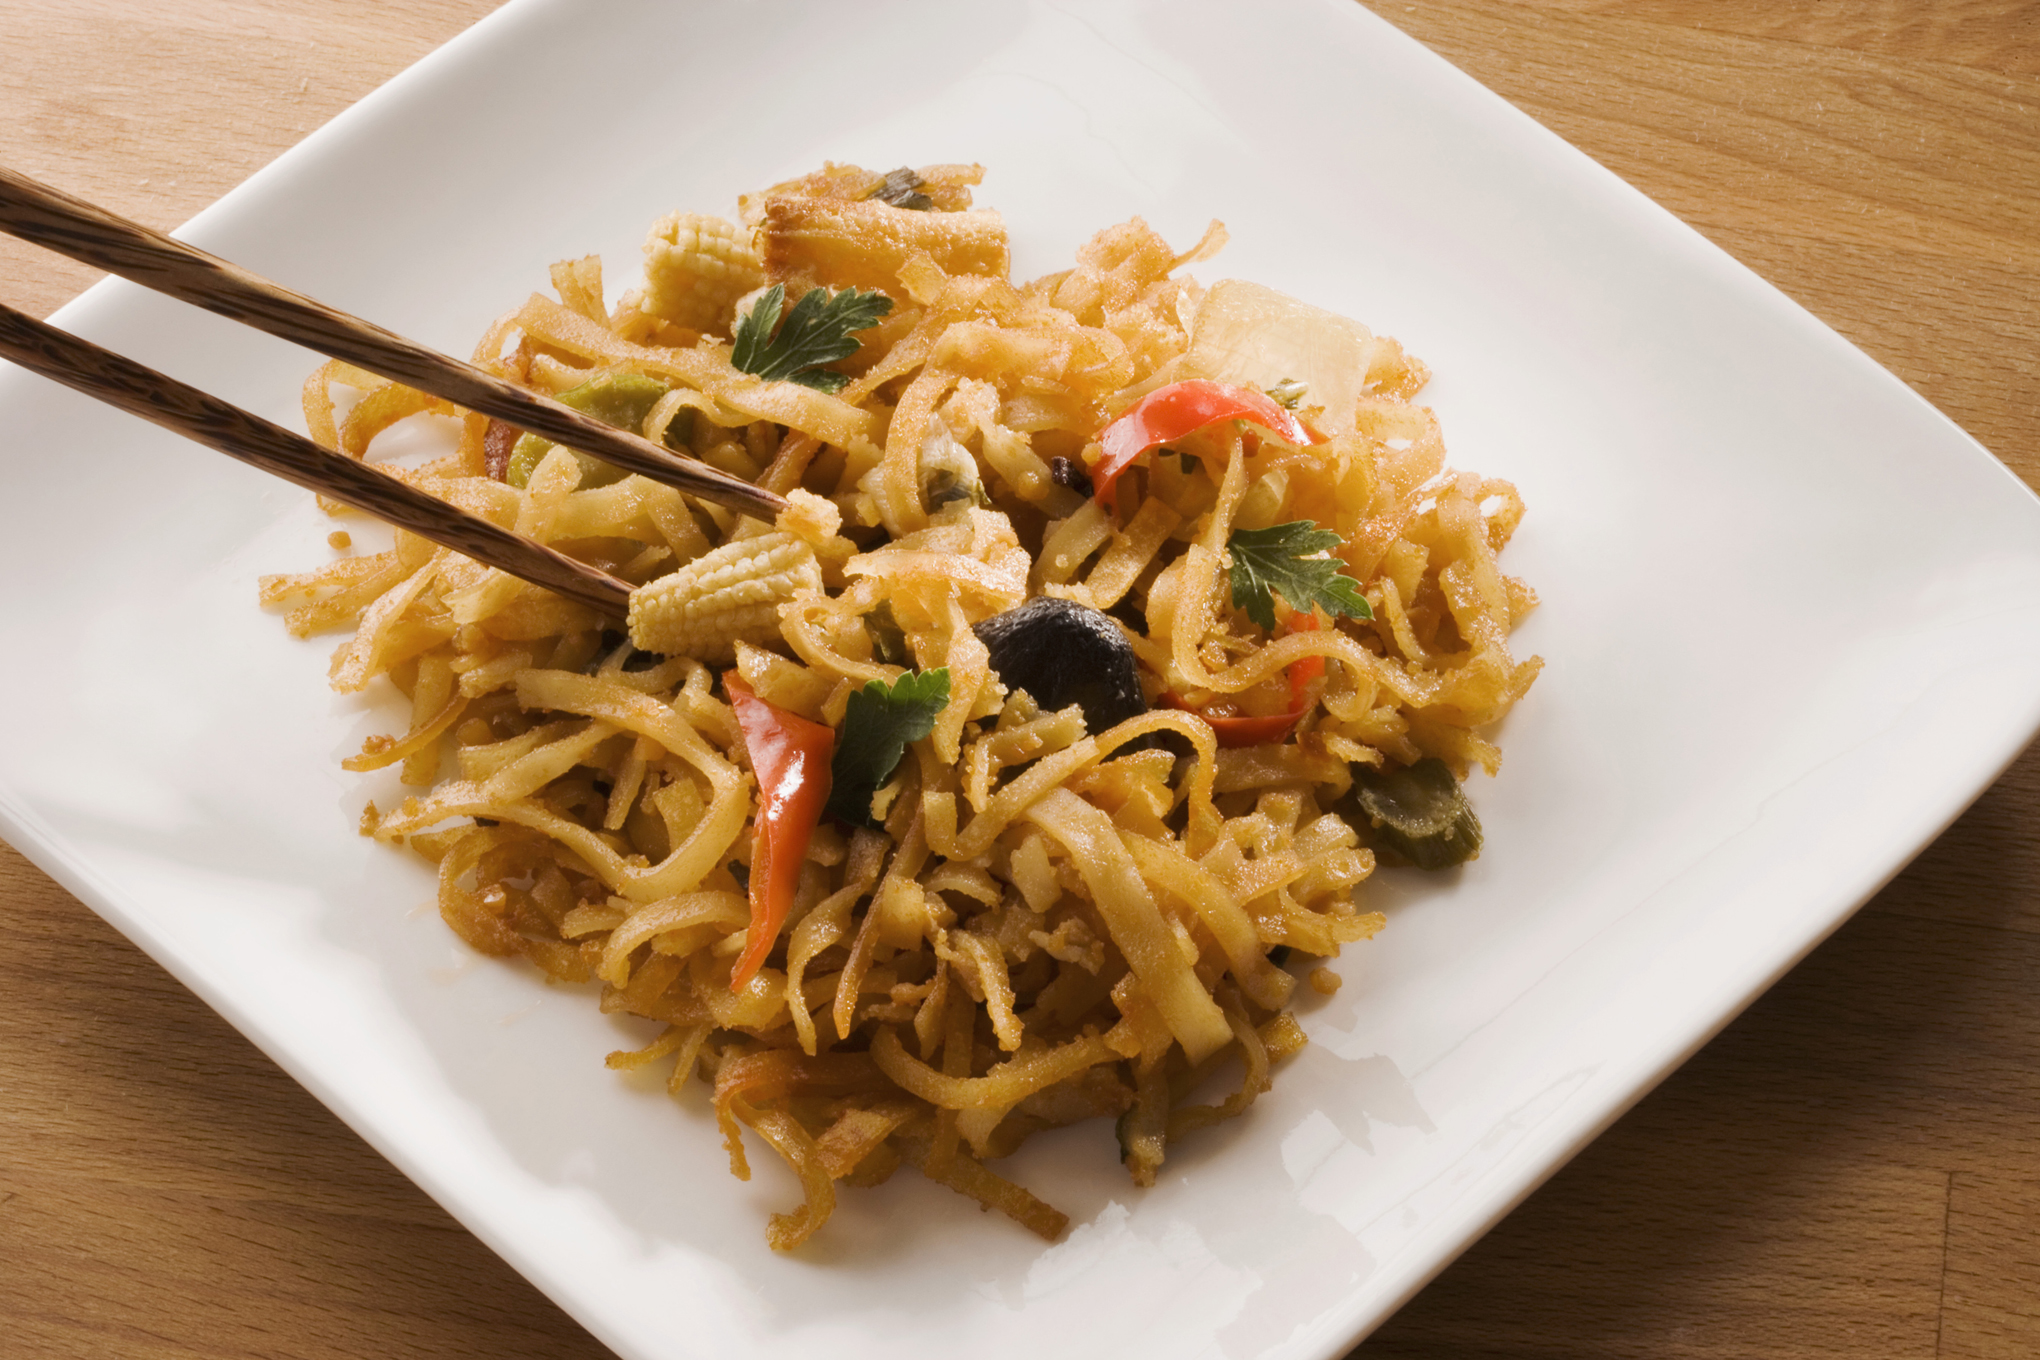 A plate of rice noodles